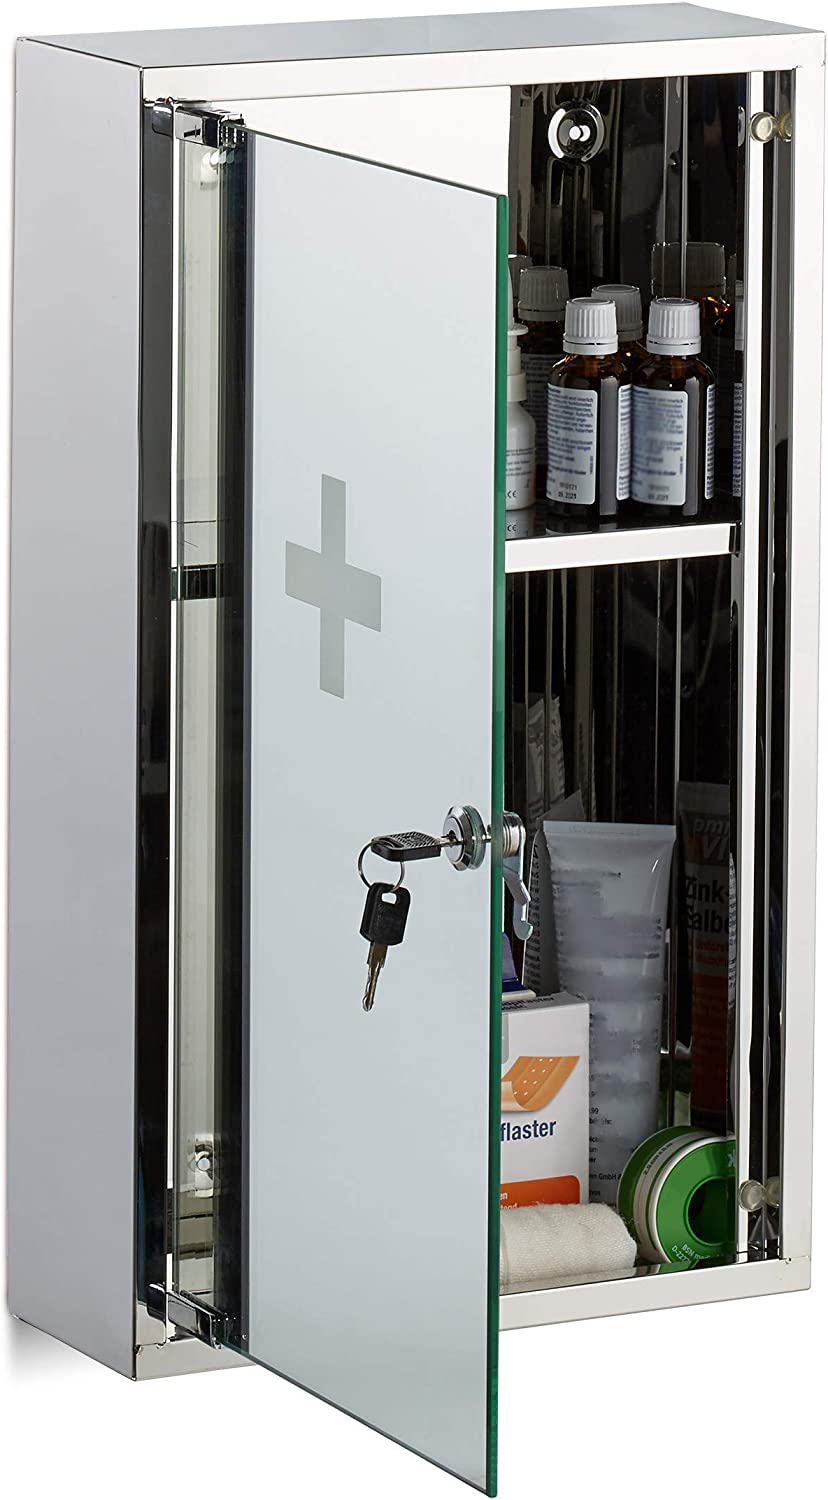 Relaxdays Stainless Steel Medicine Cabinet, Lockable Mirror Door, 2 Compartments, Home Pharmacy, H x W x D: app. 50 x 30 x 11 cm, Silver